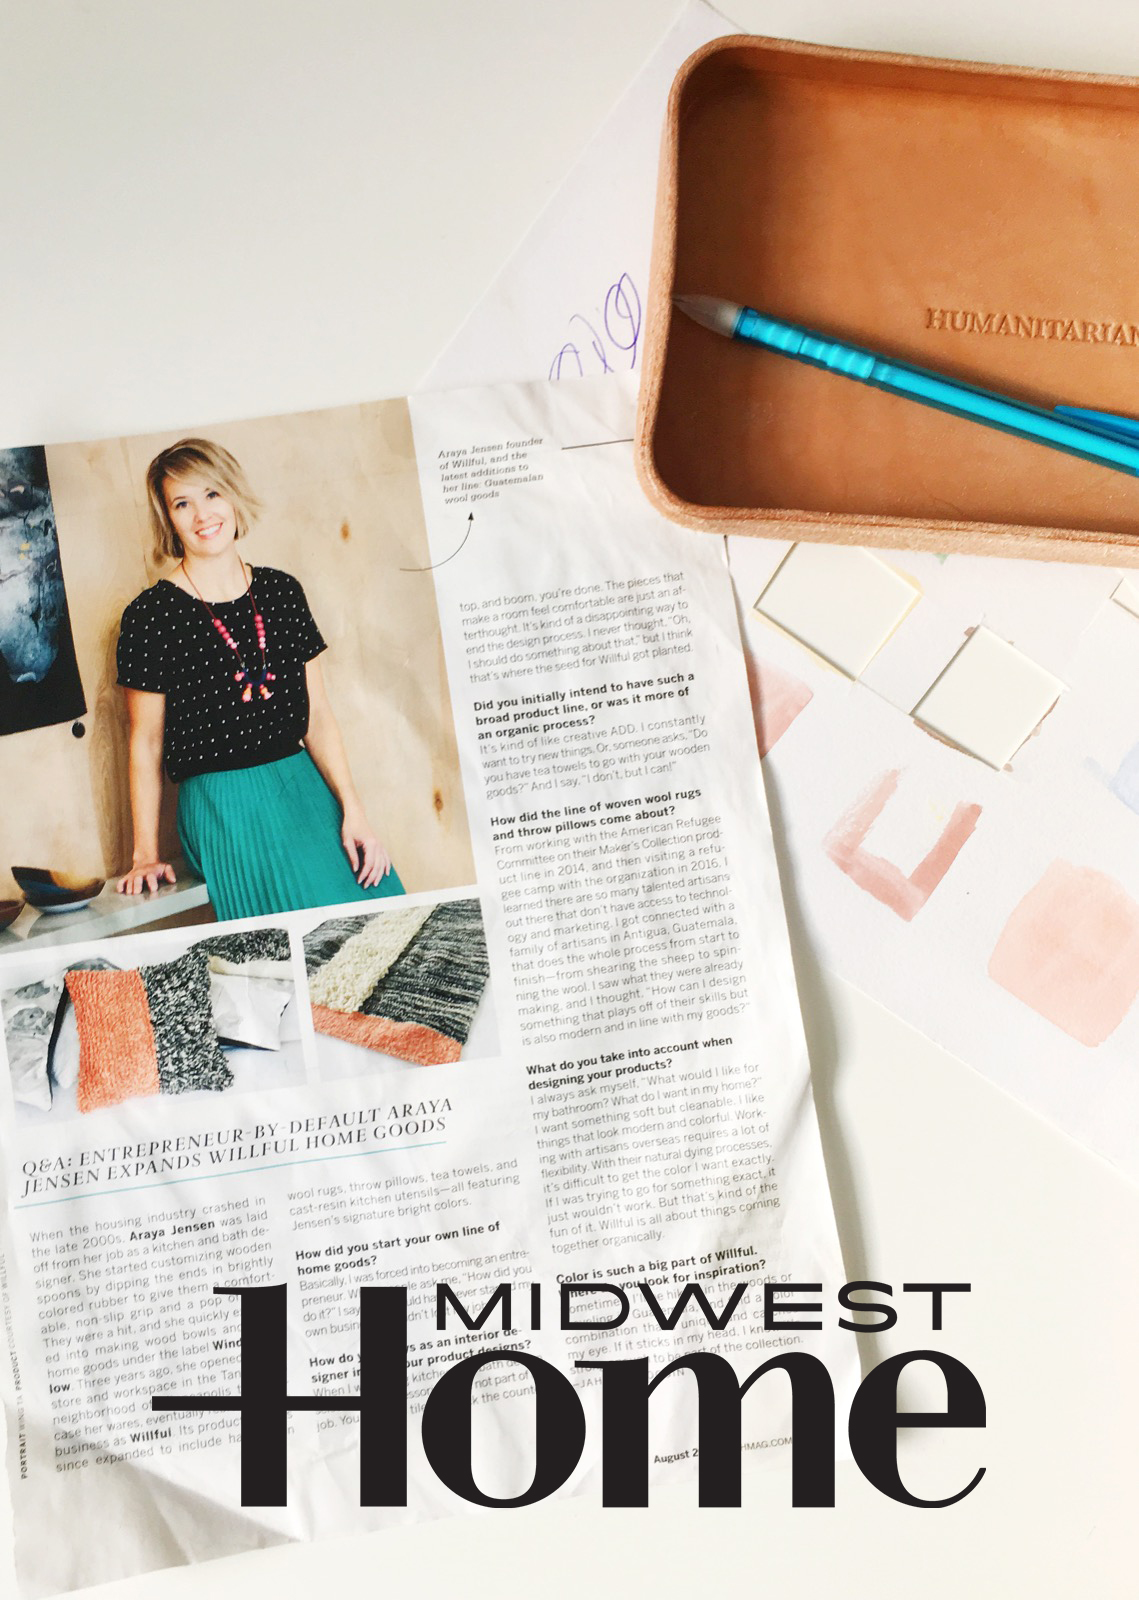 """ It's [WILLFUL] product line has since expanded to include handwoven wool rugs, throw pillows, tea towels, and cast-resin kitchen utensils - all featuring Jensen's signer bright colors."" -MIDWEST HOME MAGAZINE August 2017"